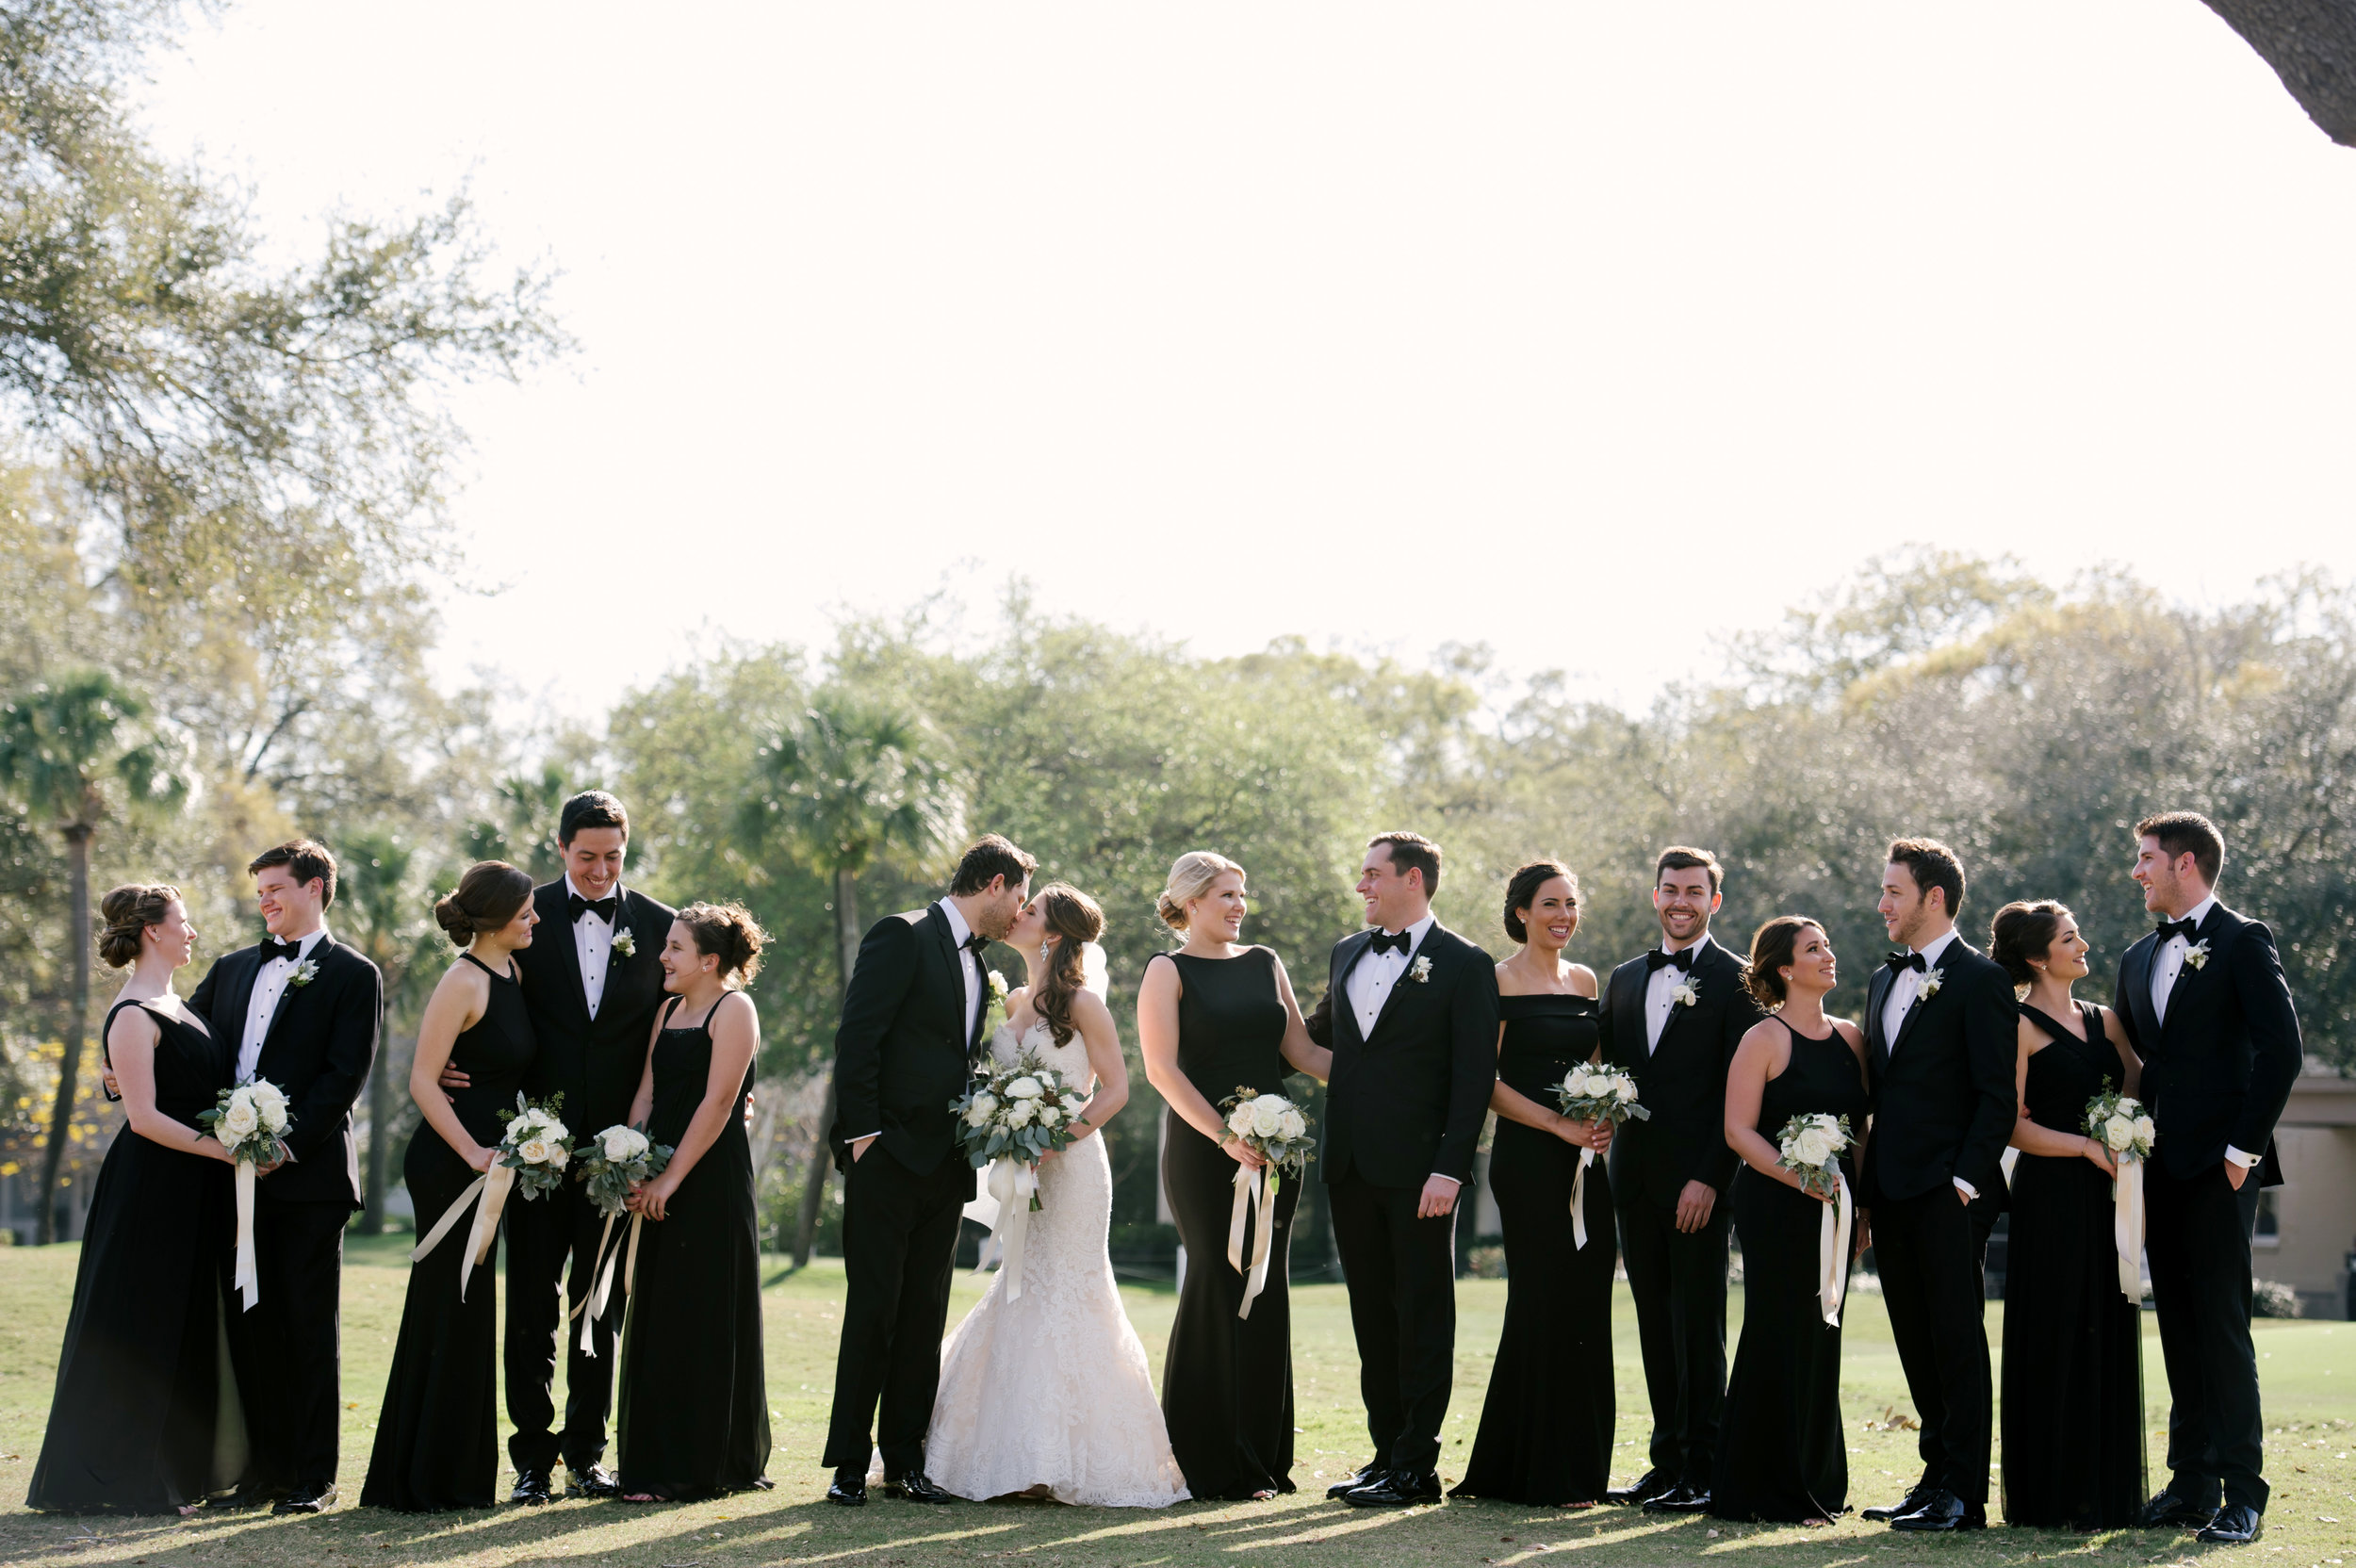 Classic, elegant styling appeared throughout, with the wedding party decked out in formal black attire.